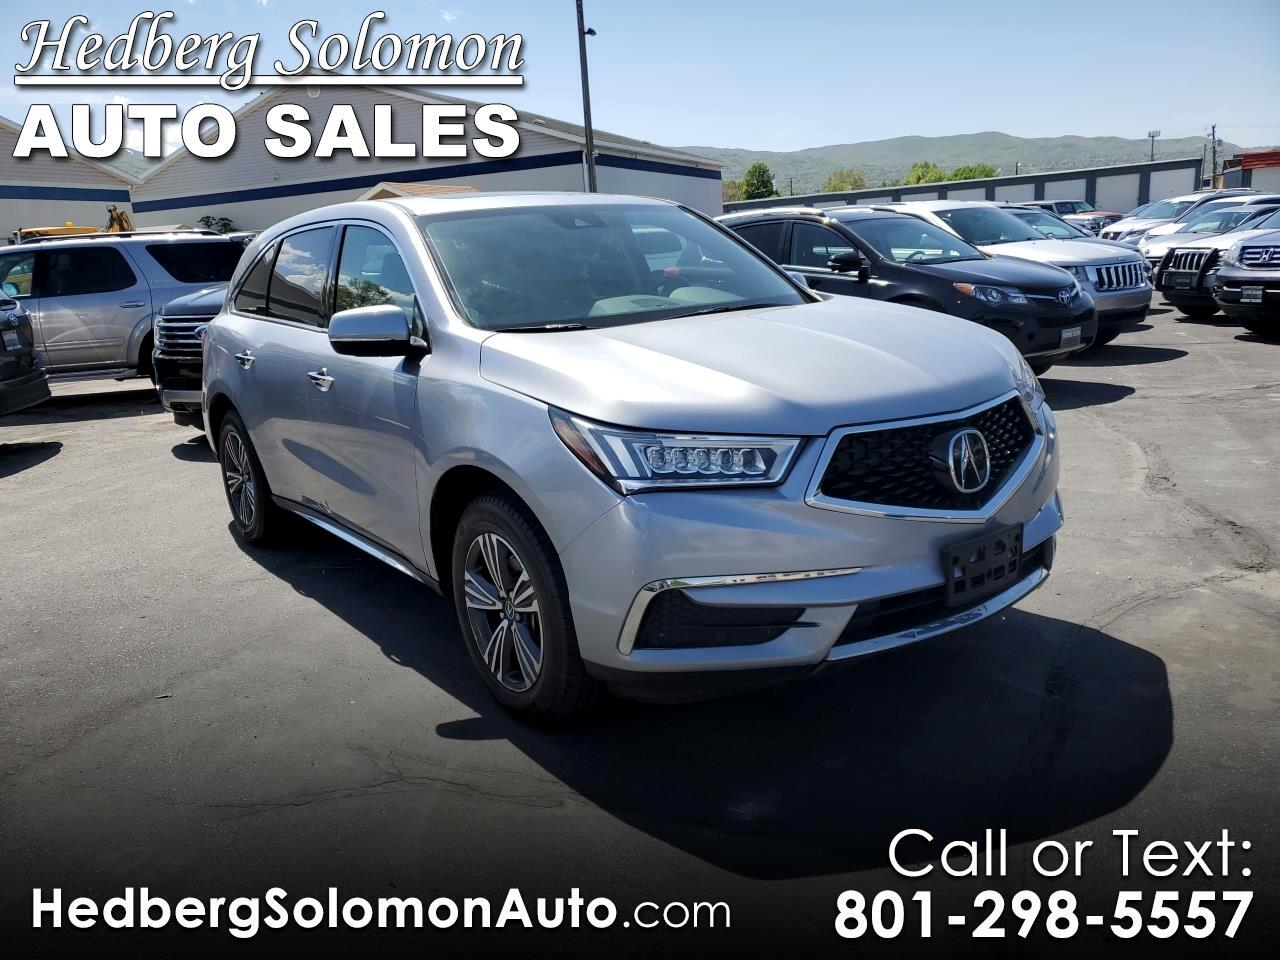 2017 Acura MDX 9-Spd AT w/ AcuraWatch Plus